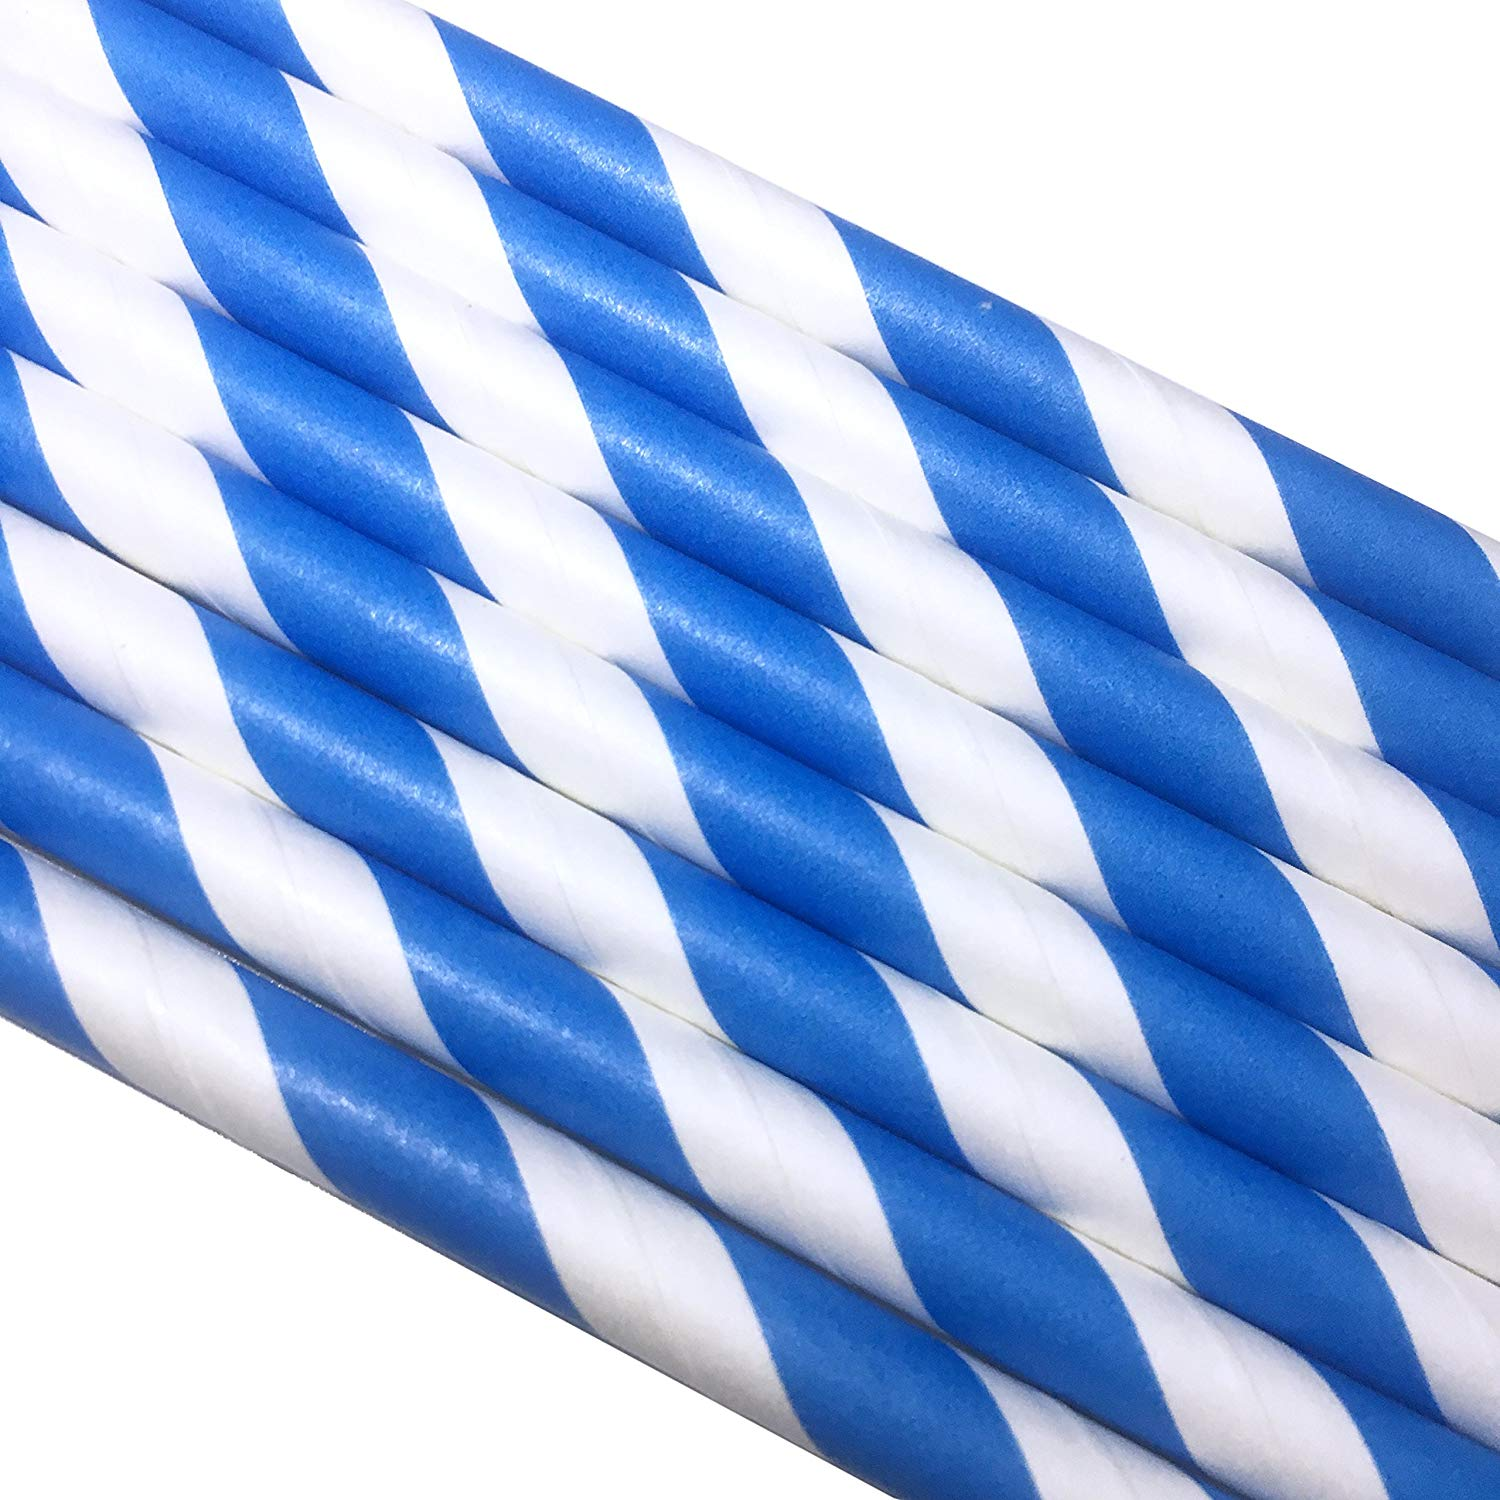 Paper Straw 5.75 Blue and White Stripe.- Cocktail Coffee Paper Straw. Pack of 500 count